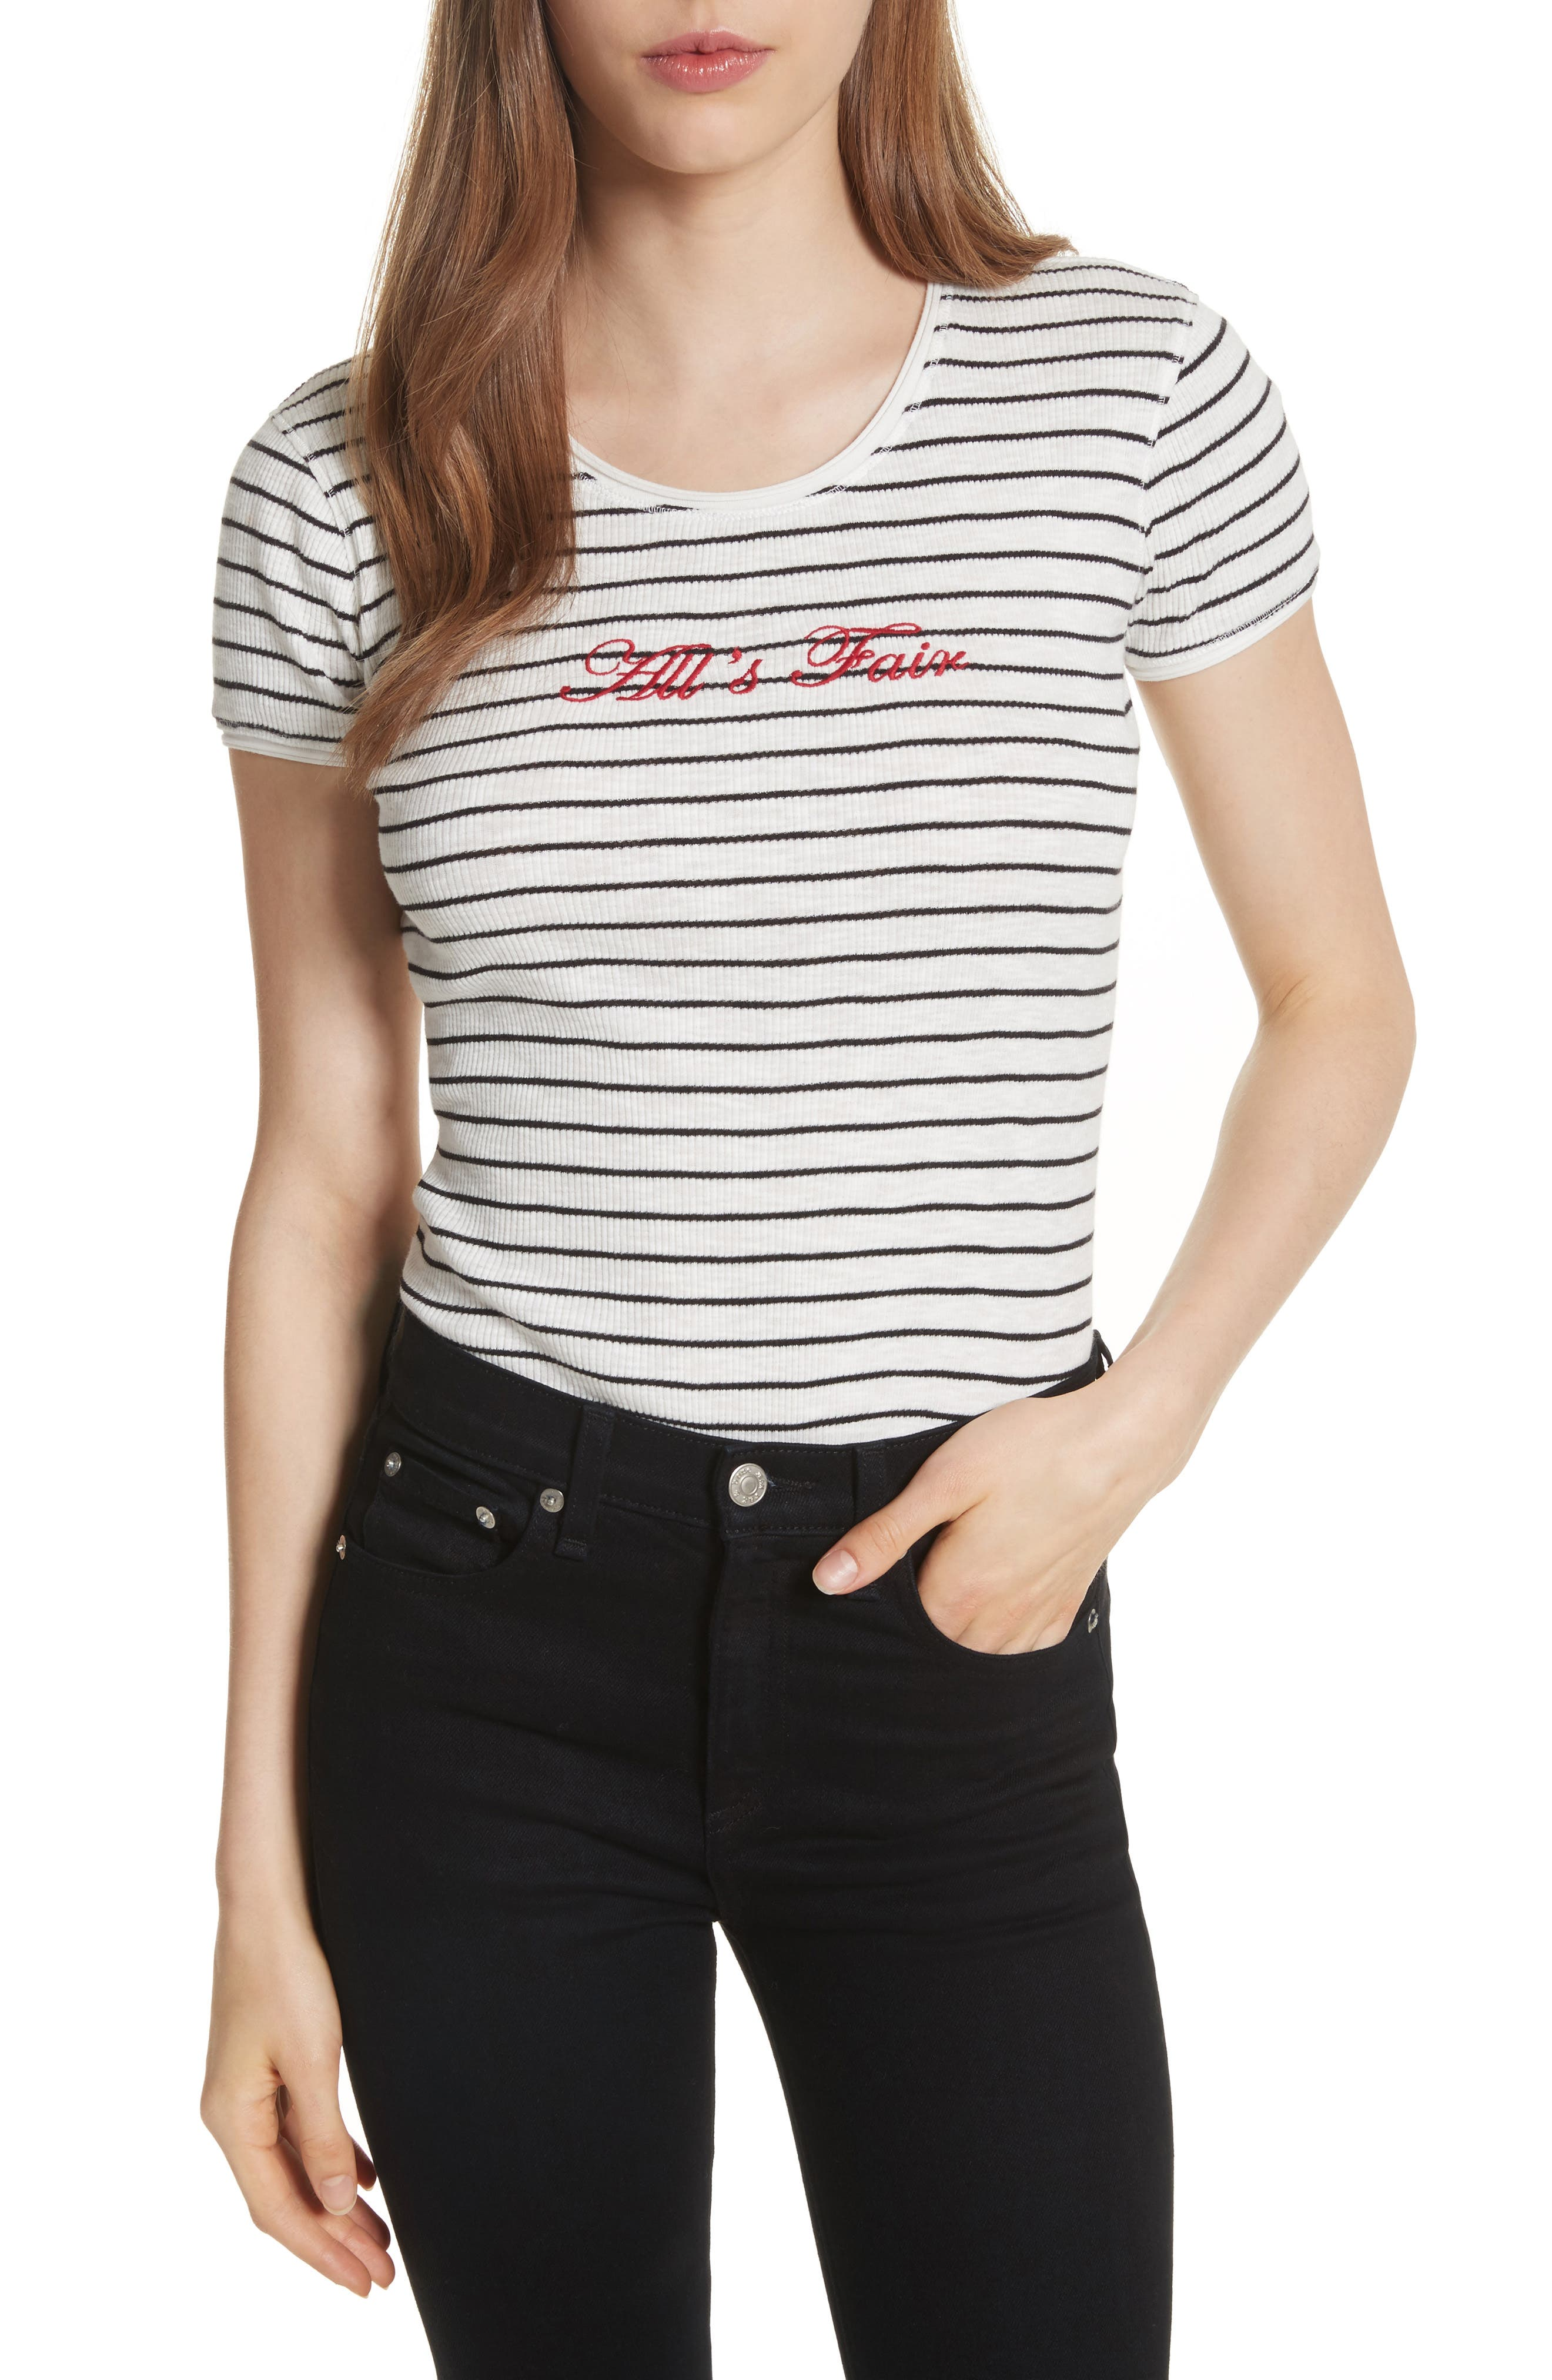 Embroidered Lilies Tee,                         Main,                         color, Black/ Blanc